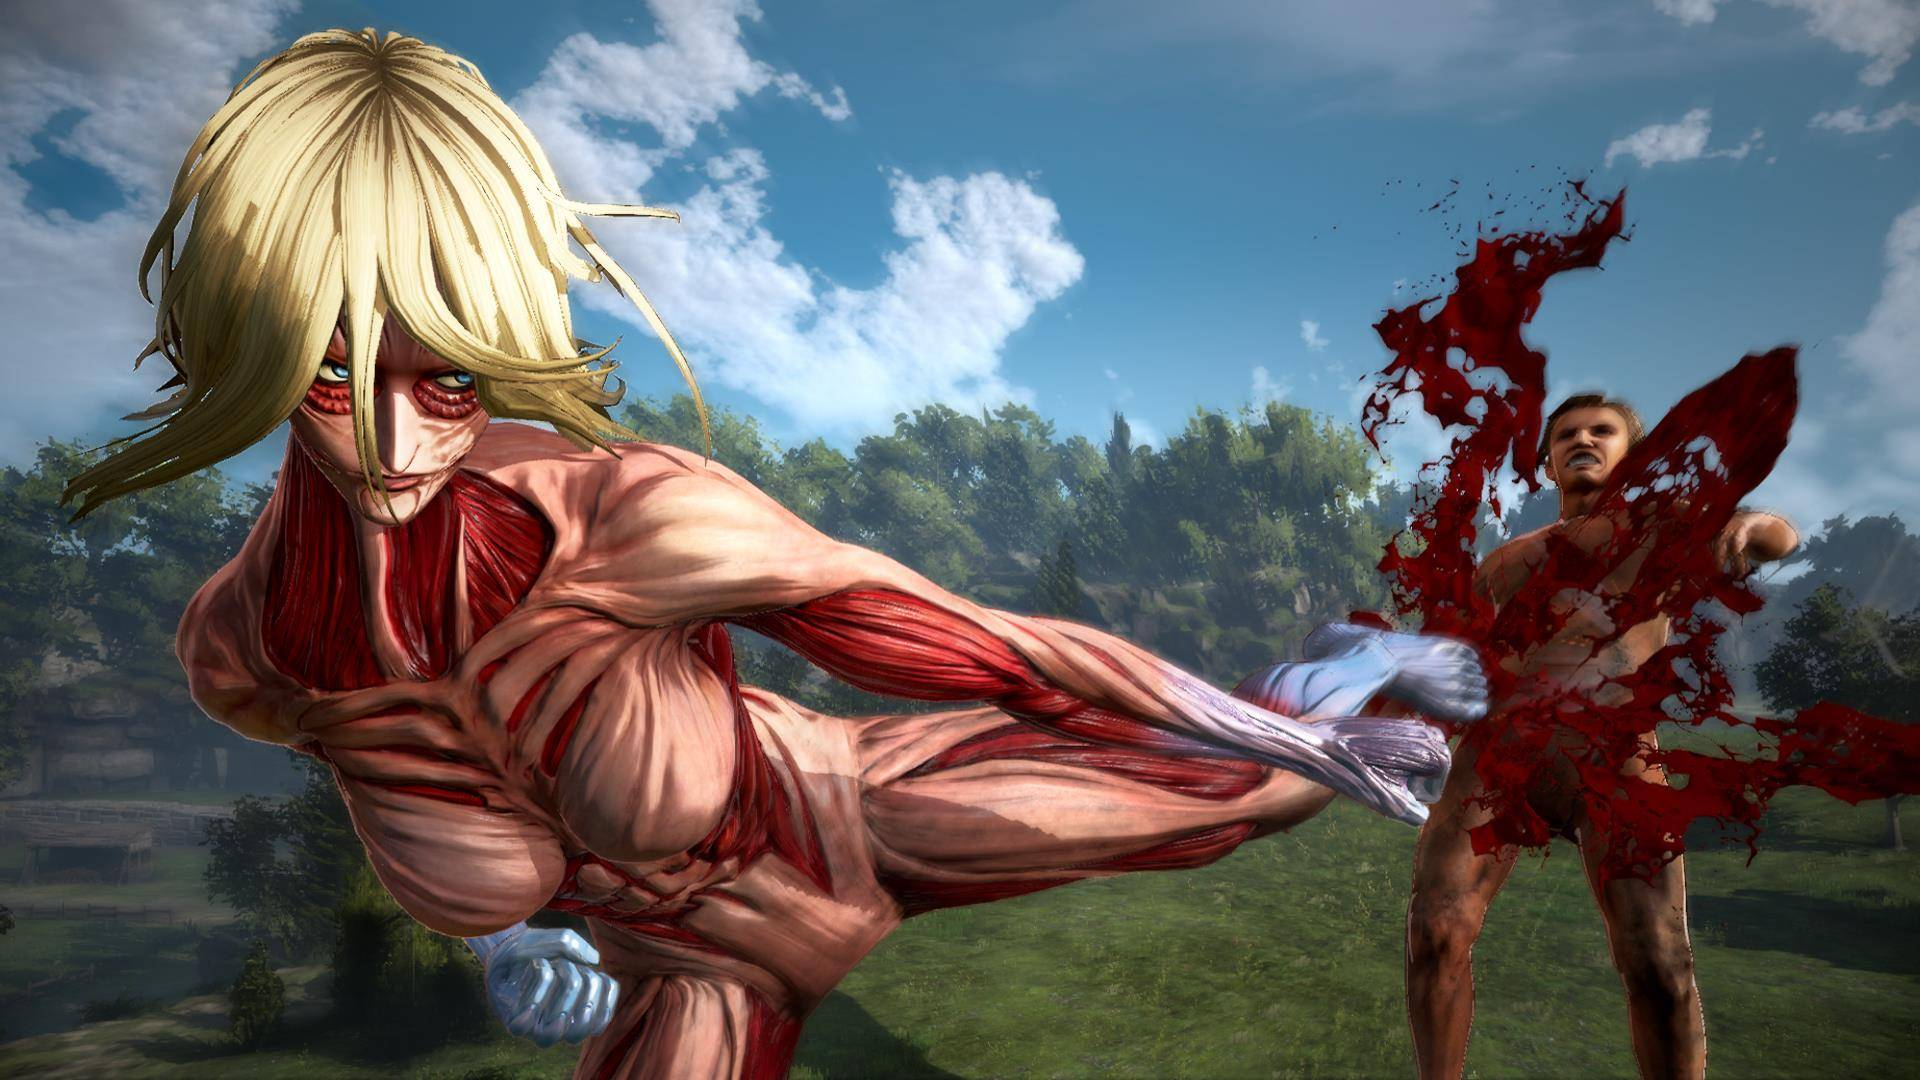 Anime Wallpaper Steam Attack On Titan 2 Lands In North America Amp Europe On March